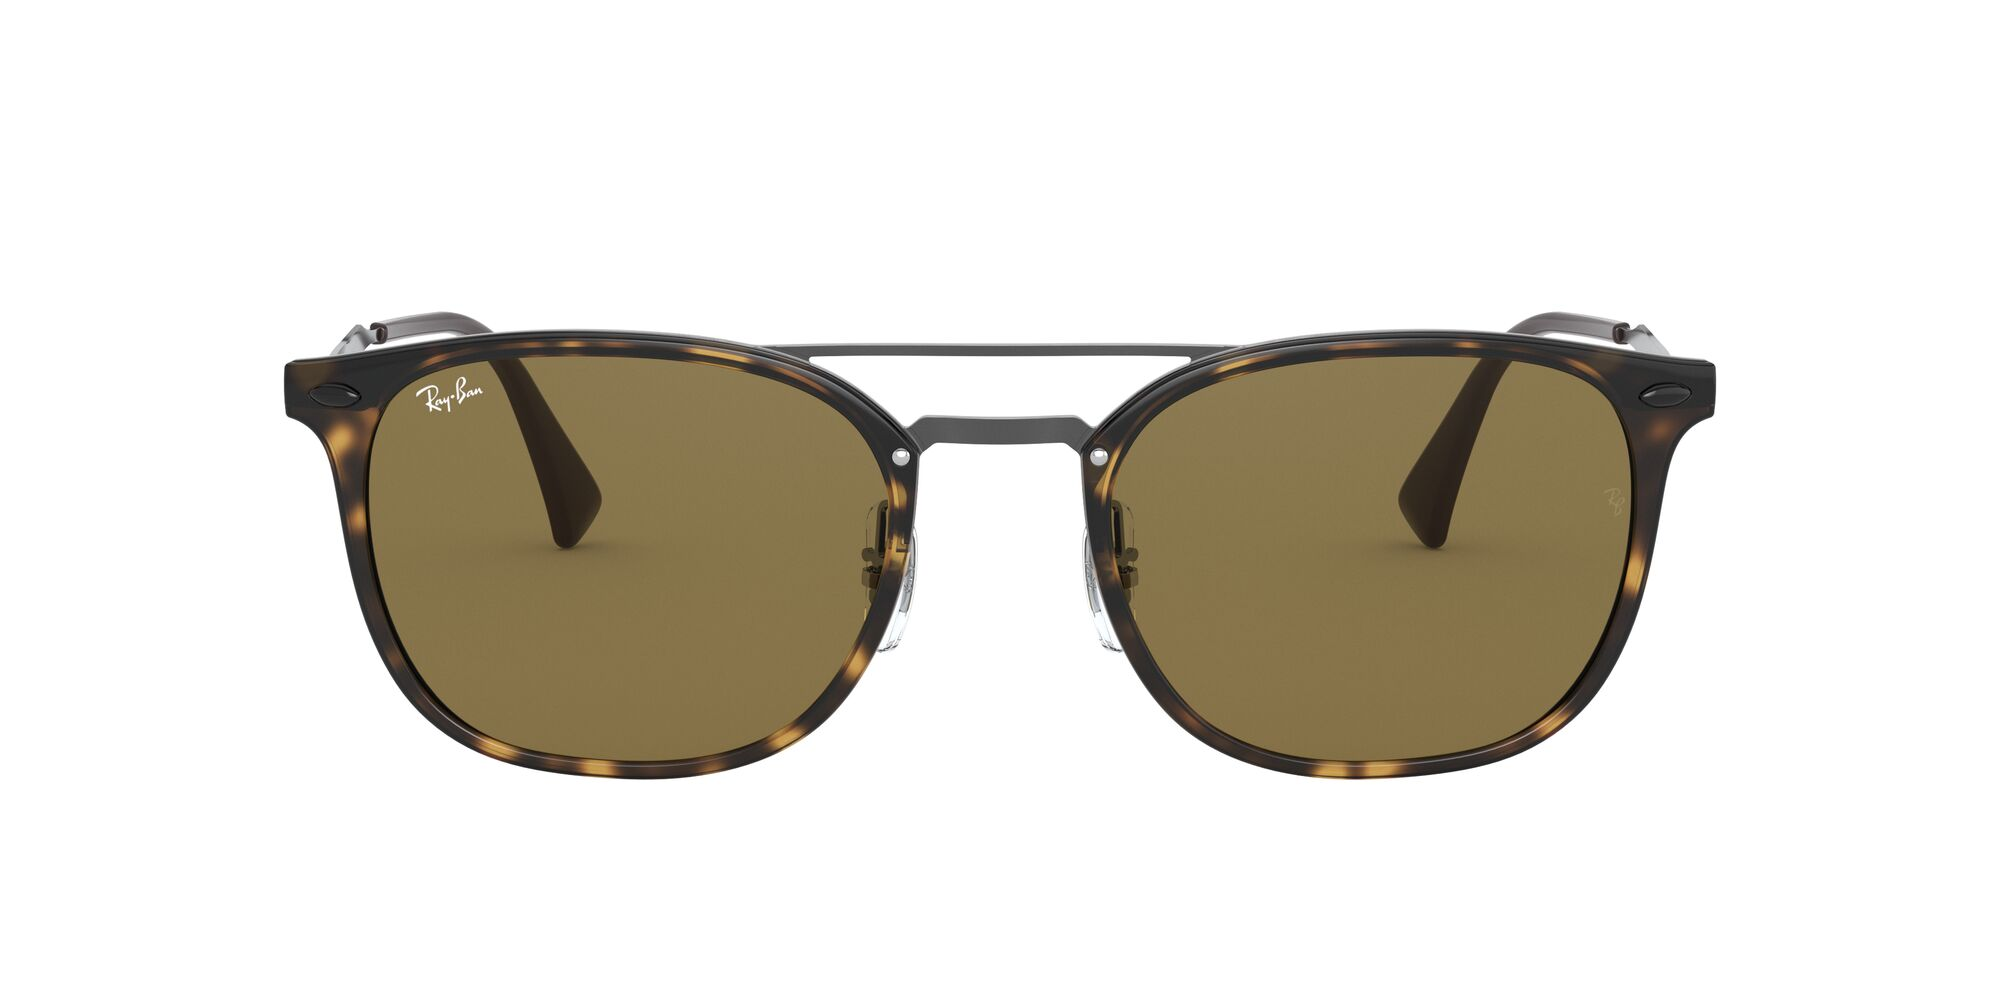 Front Ray-Ban Ray-Ban 0RB4286 710/73 55/21 Zilver, Bruin/Bruin